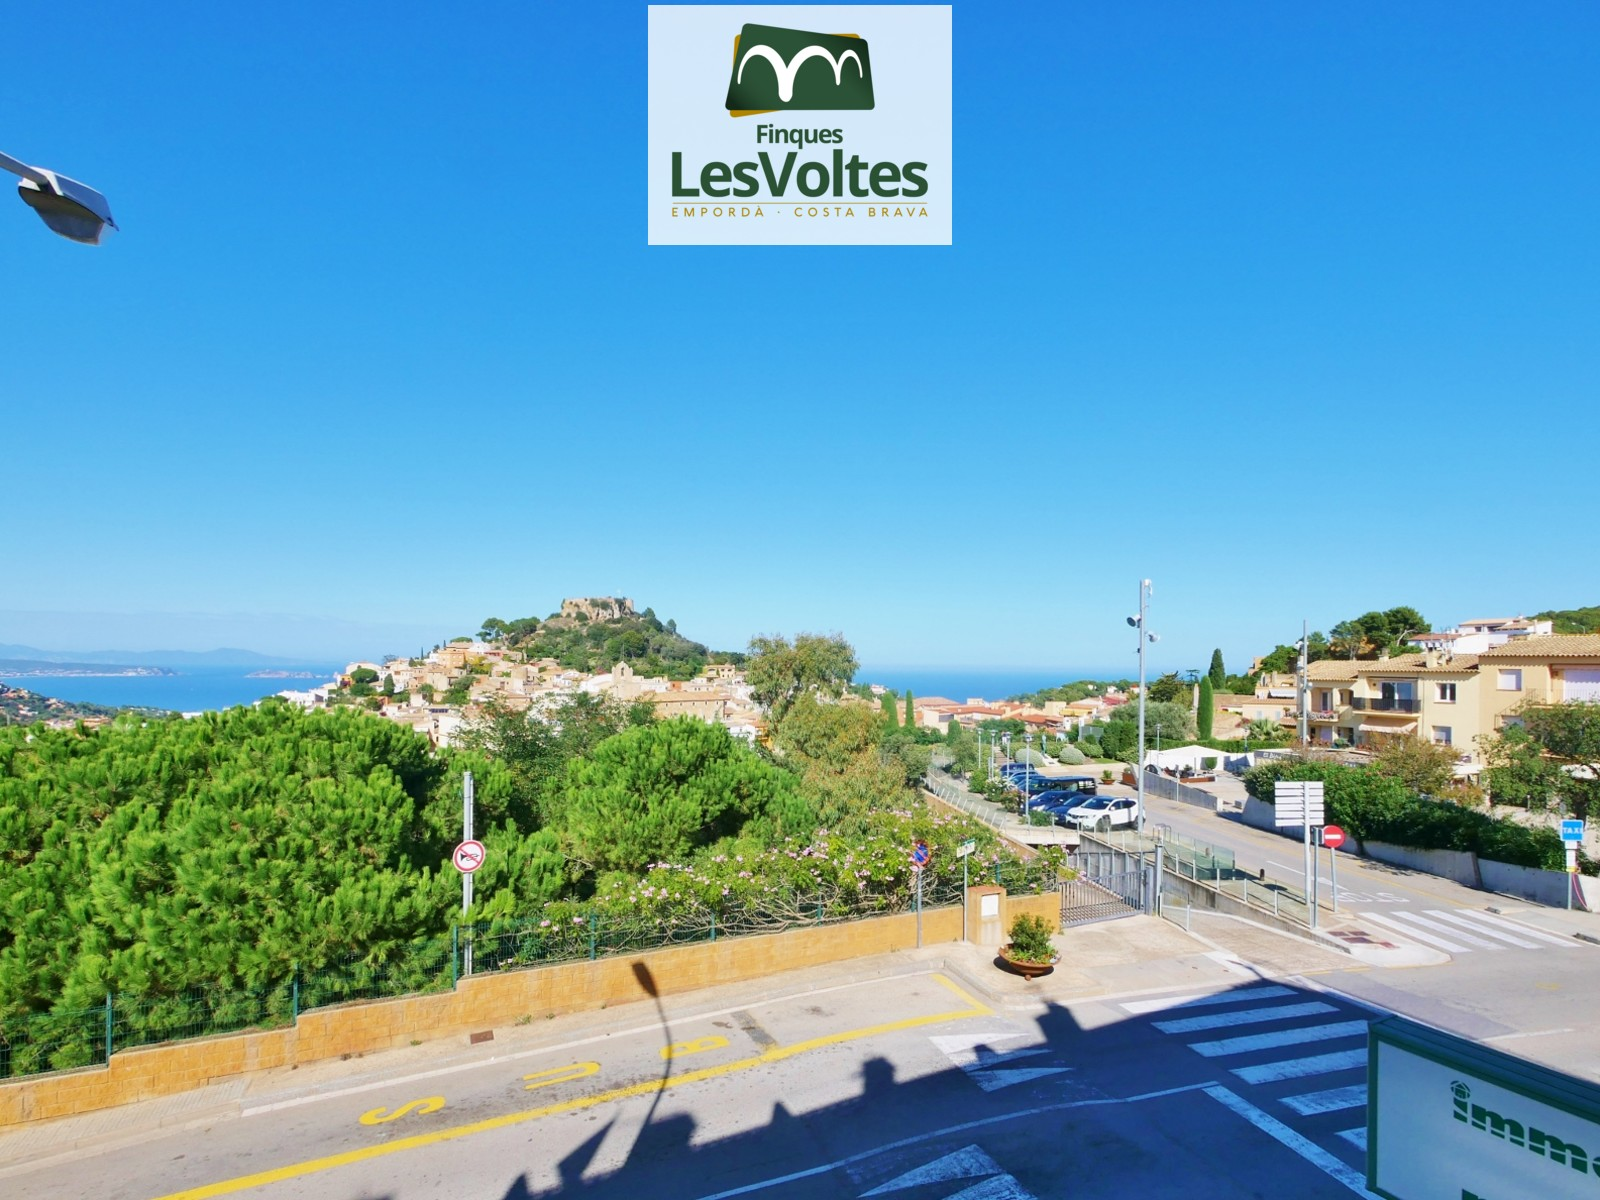 3 BEDROOM DUPLEX APARTMENT WITH TERRACE FOR SALE IN BEGUR WITH MAGNIFICENT SEA VIEWS. PARKING INCLUDED